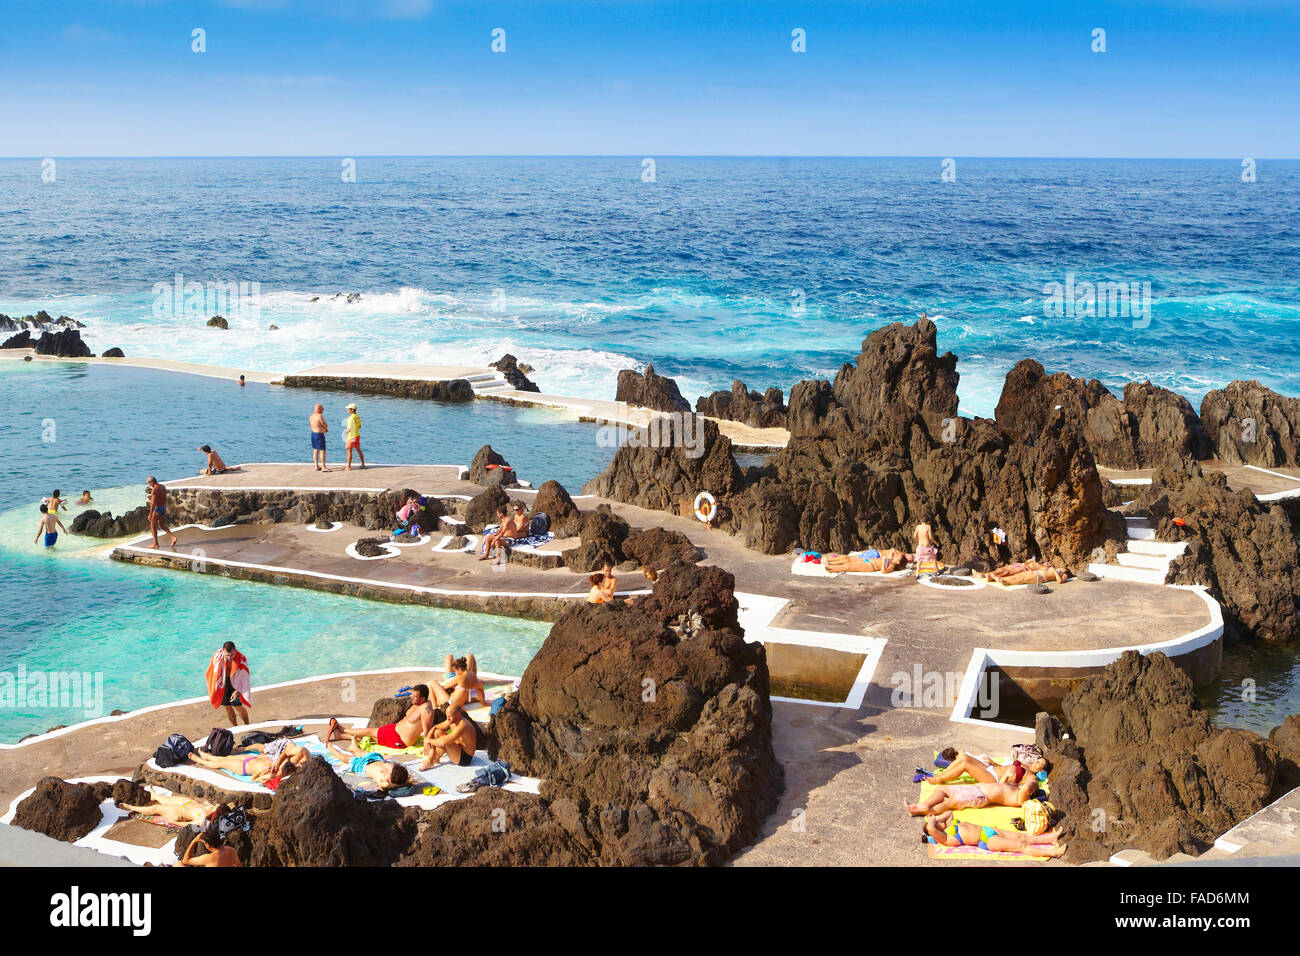 Swimming pool with ocean water, Porto Moniz, Madeira Island, Portugal - Stock Image